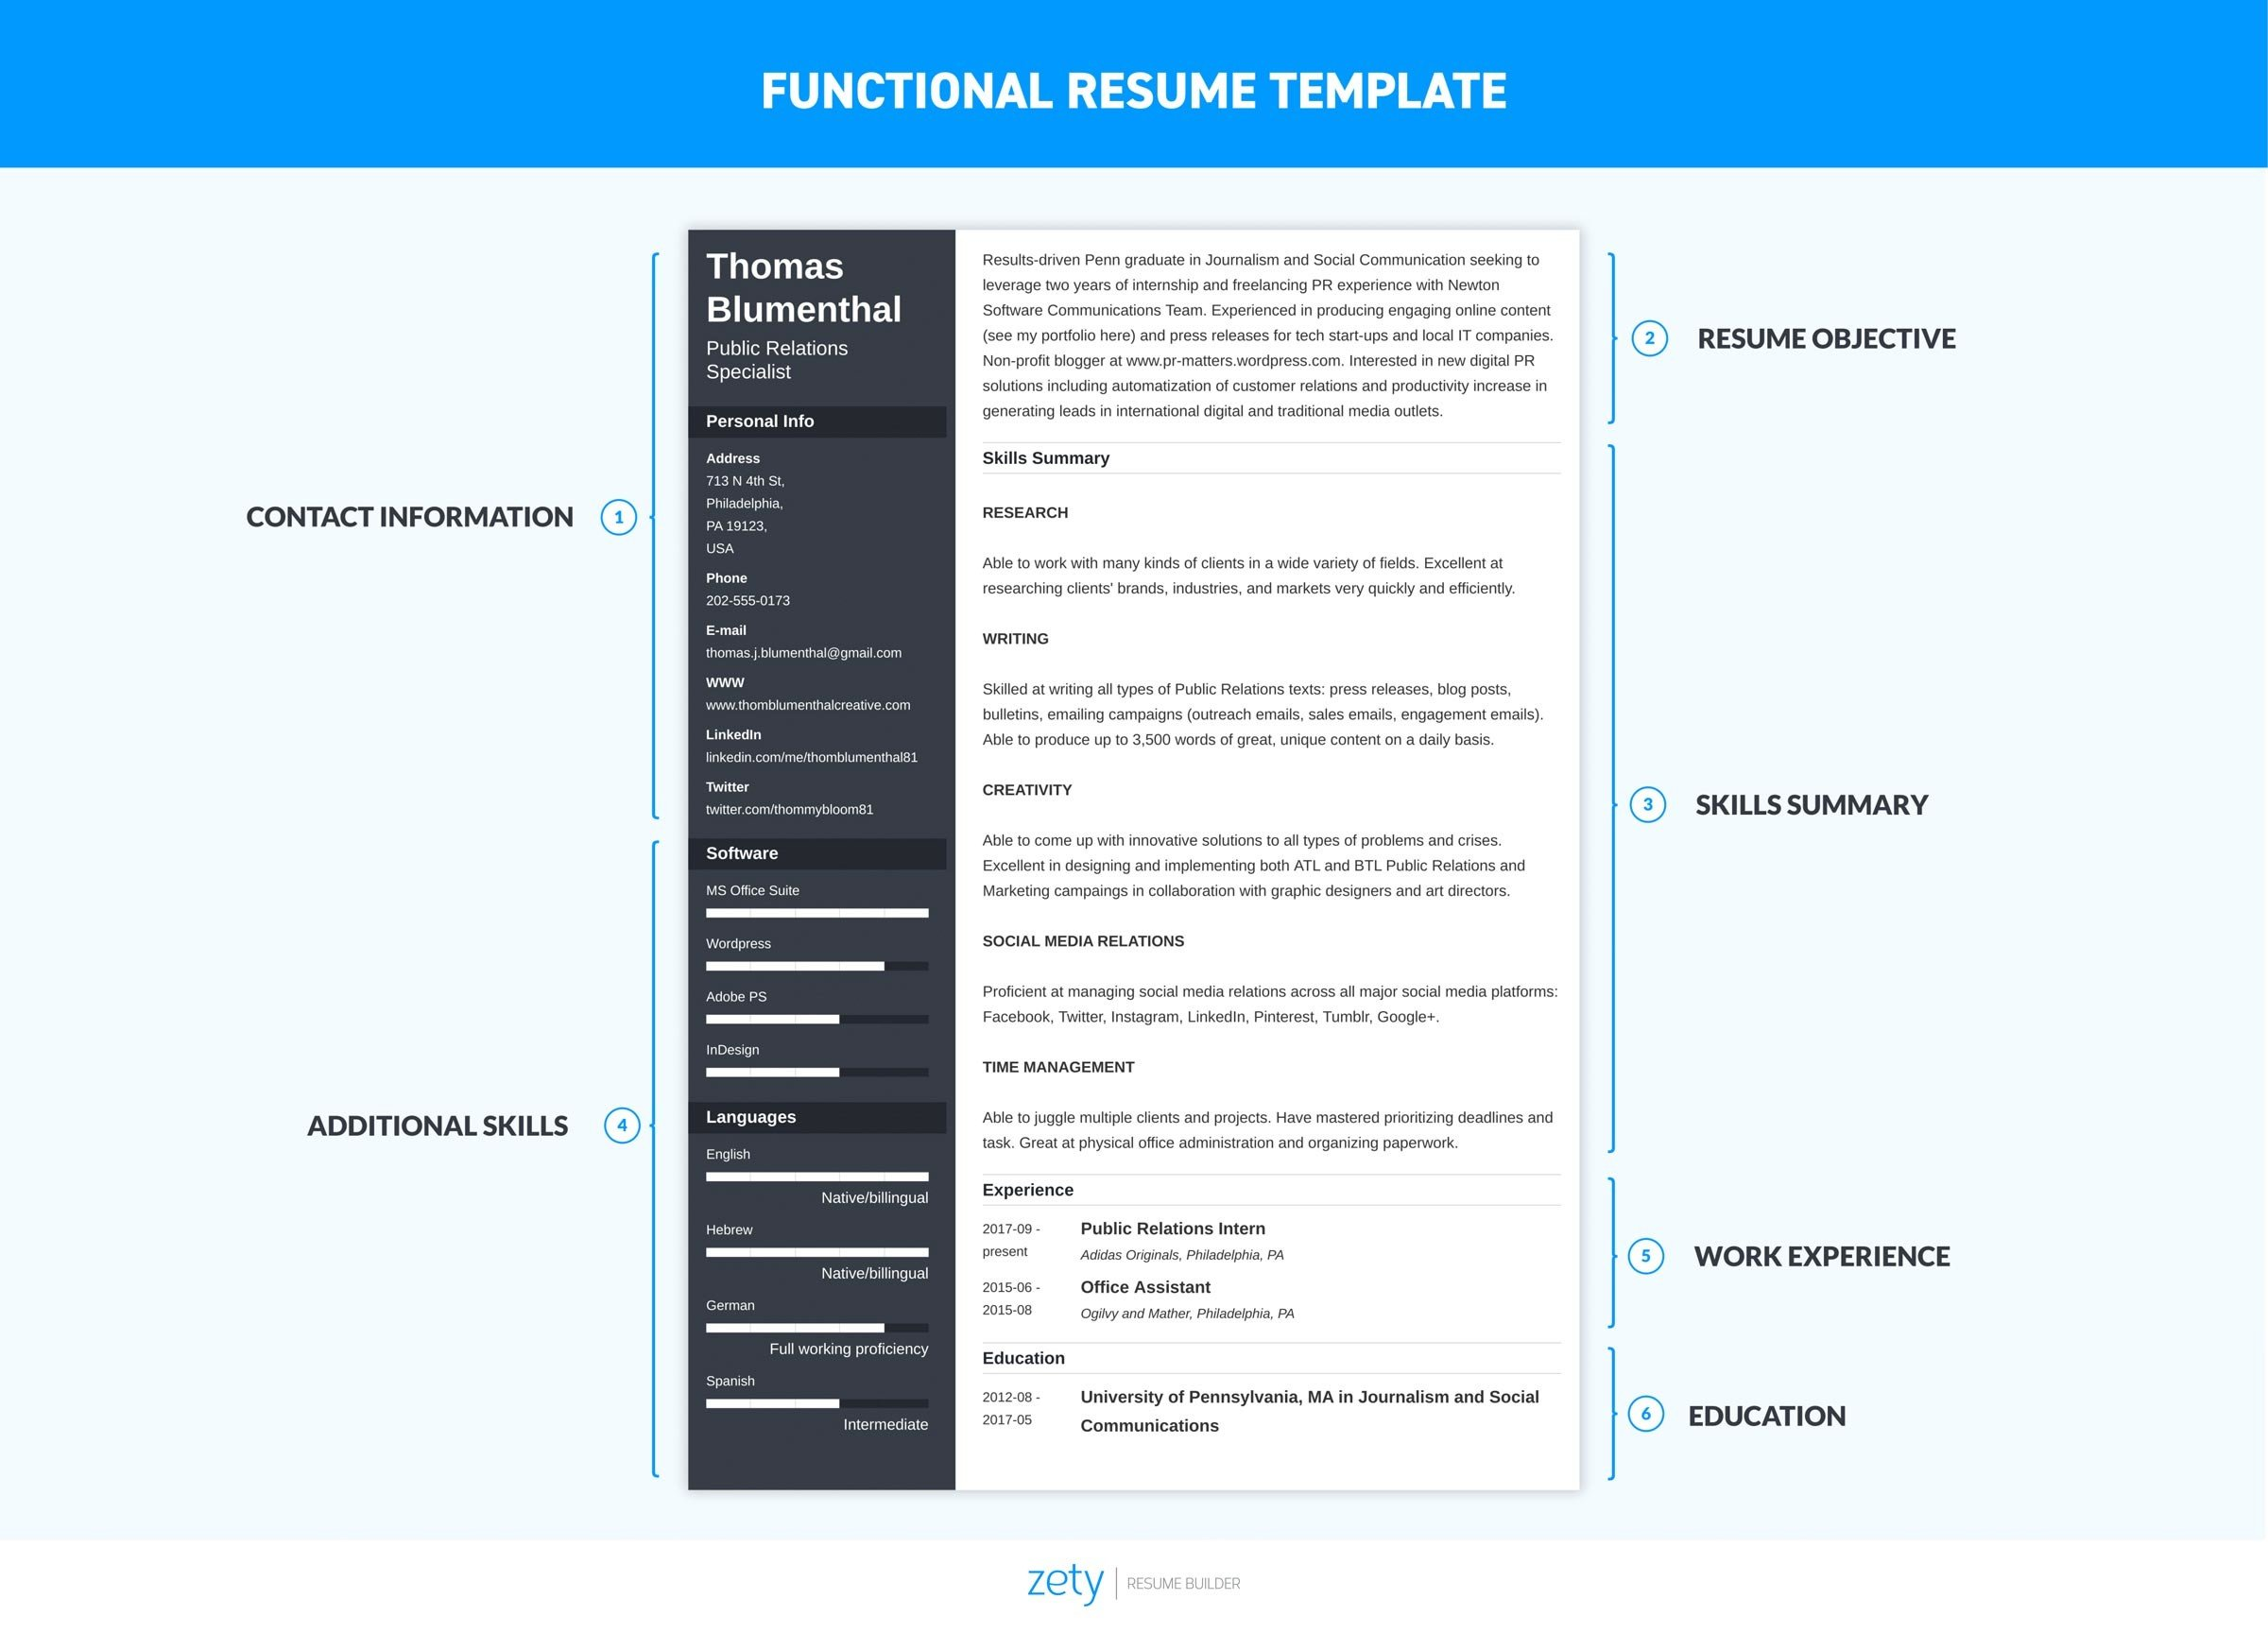 functional resume examples skills based templates core template for word oracle project Resume Core Functional Resume Template For Word